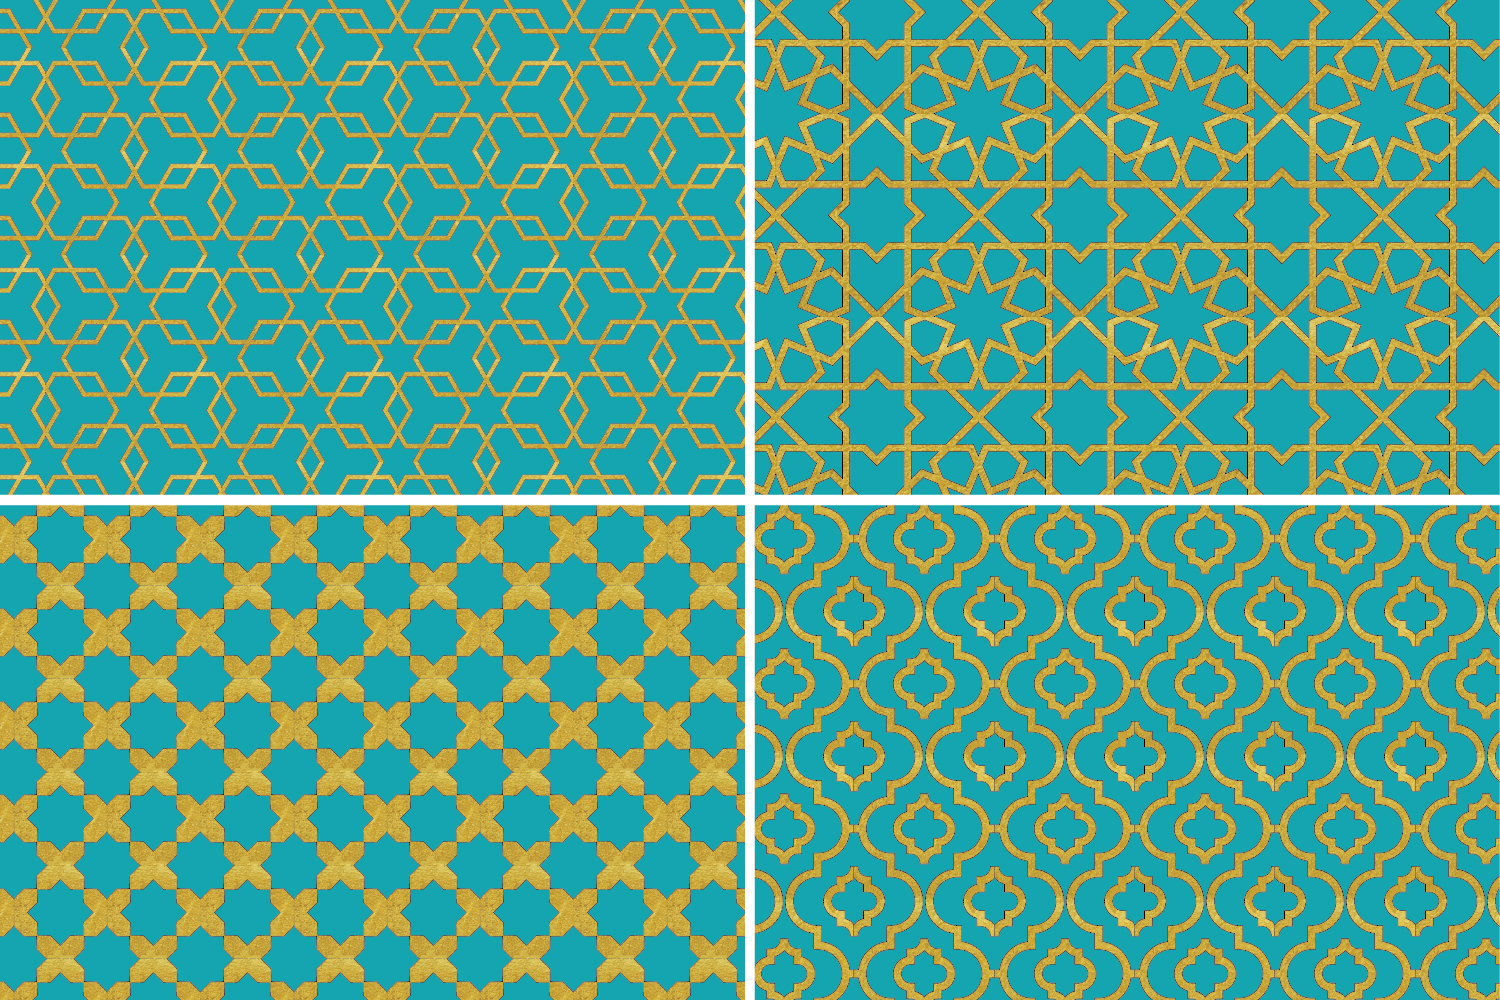 8 Seamless Moroccan Patterns - Gold & Turquoise example image 7